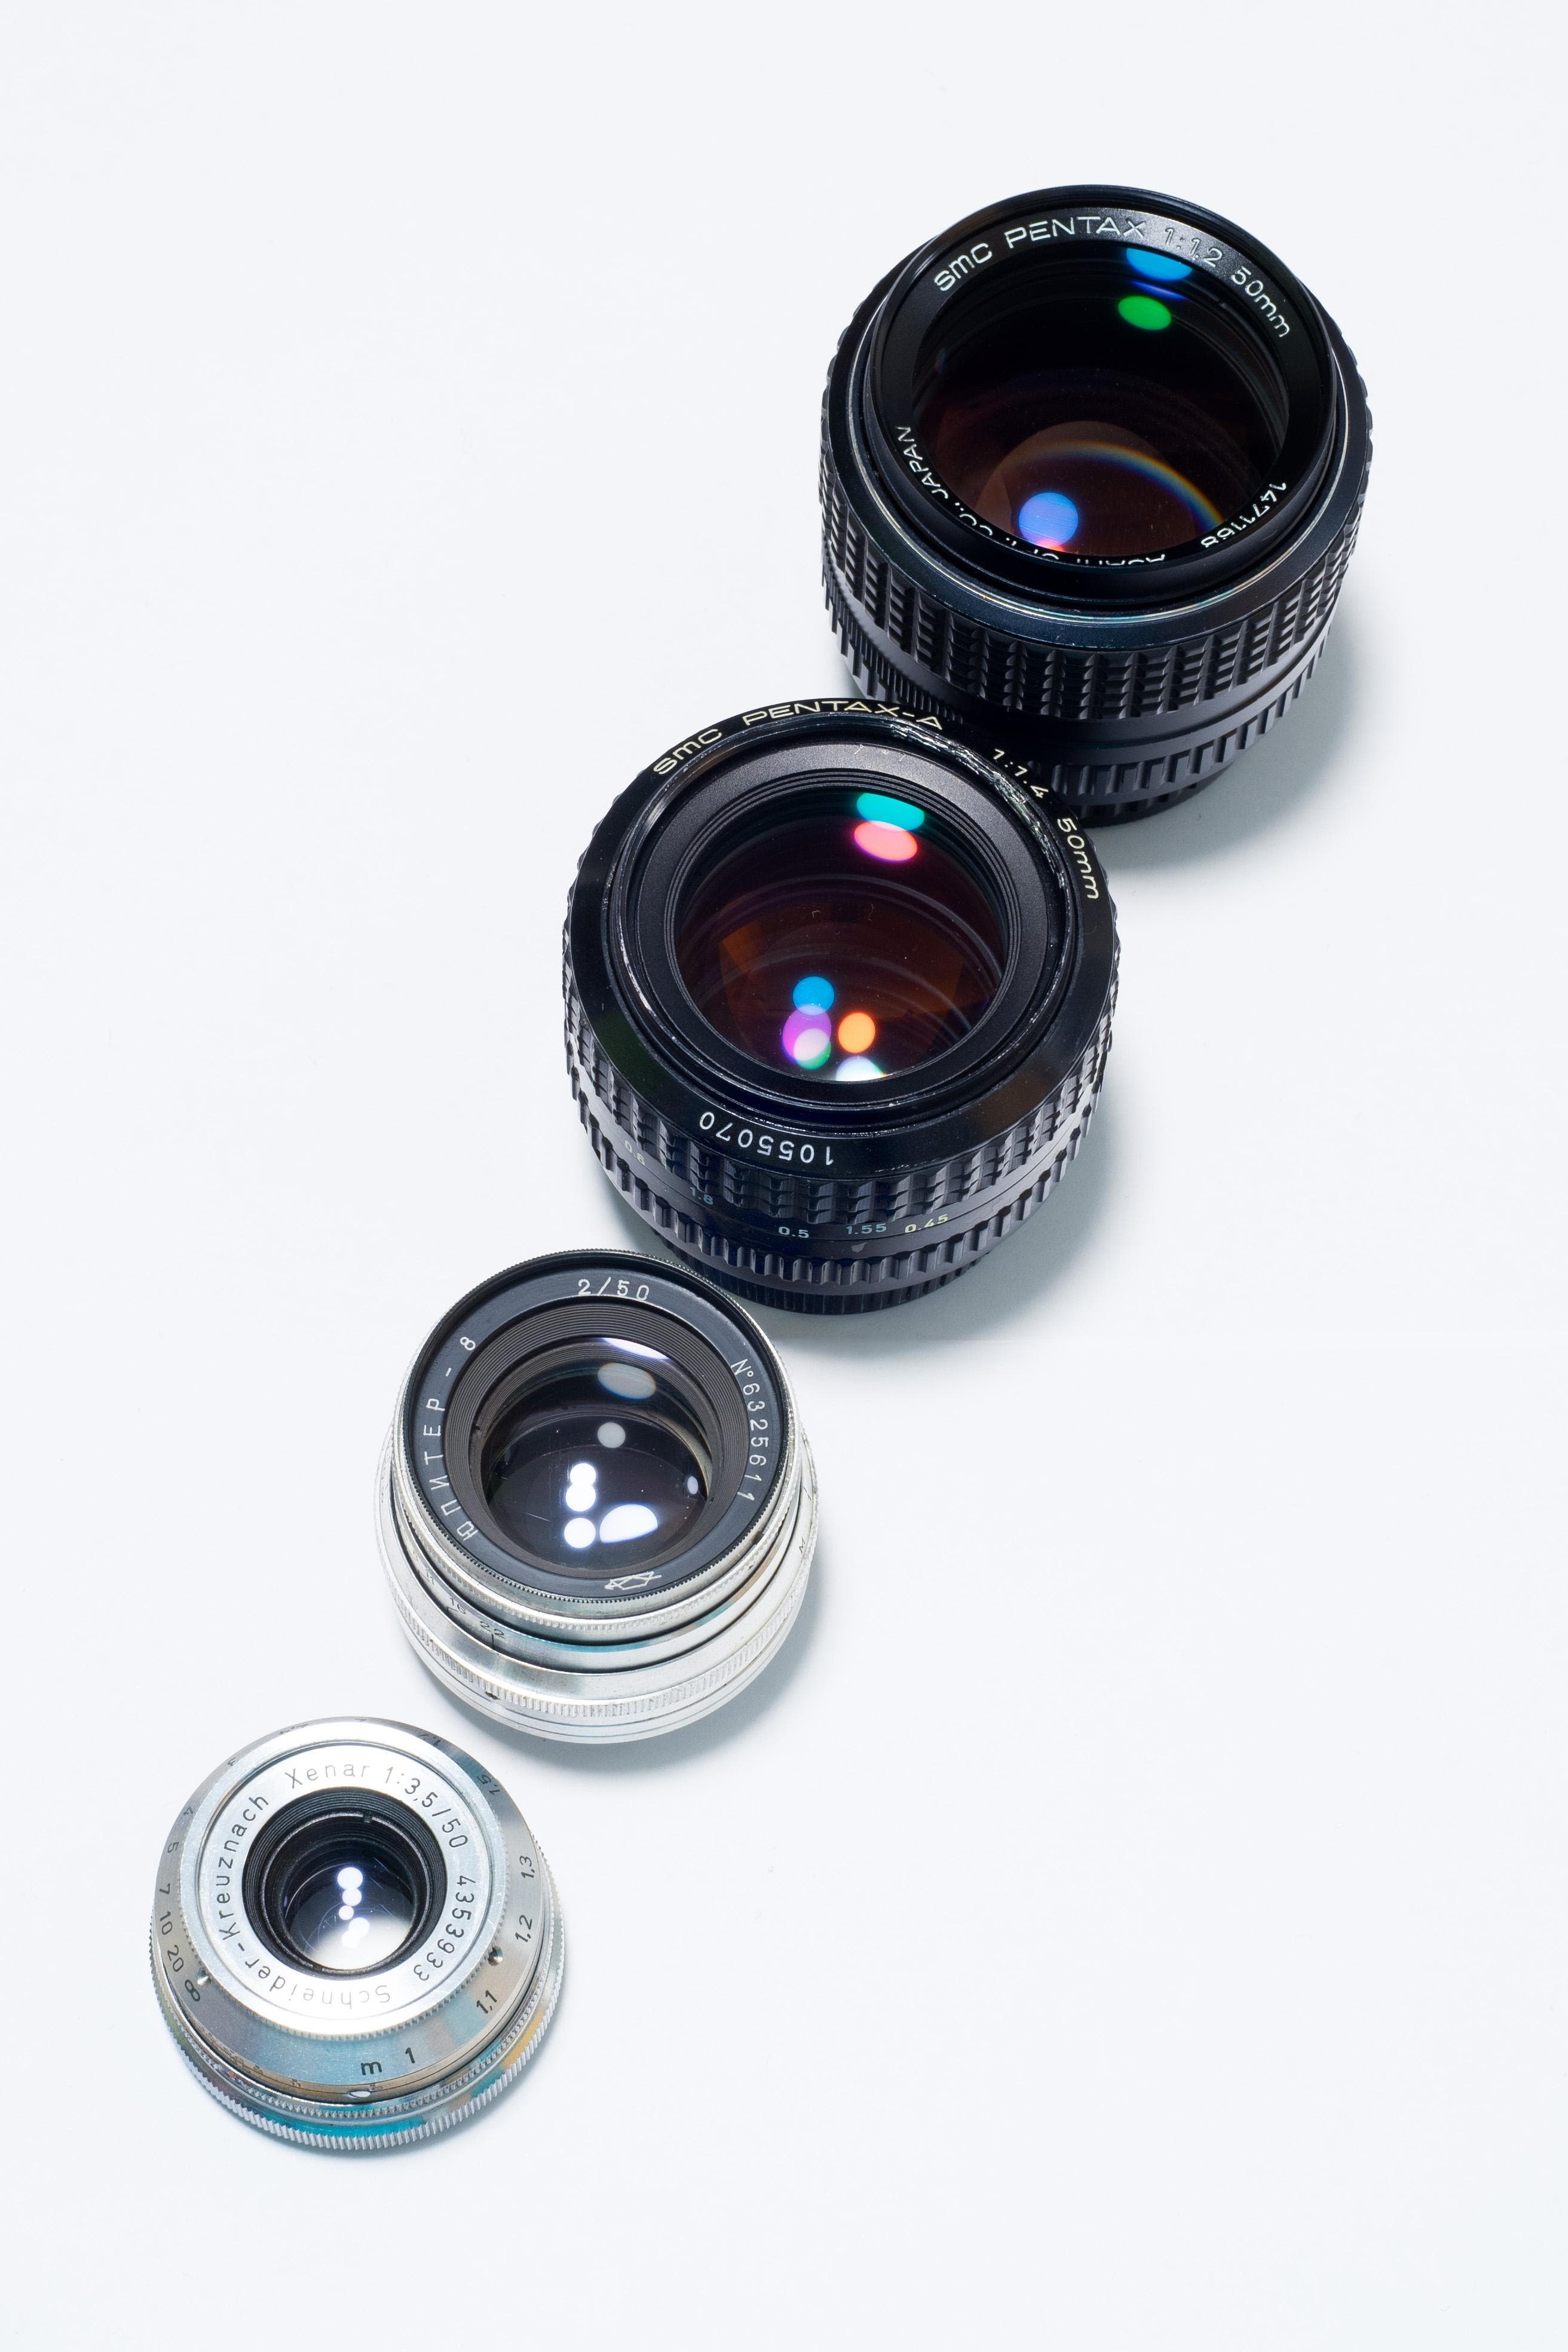 Here's a Creative Way to Think About How Lens Apertures Physically Work